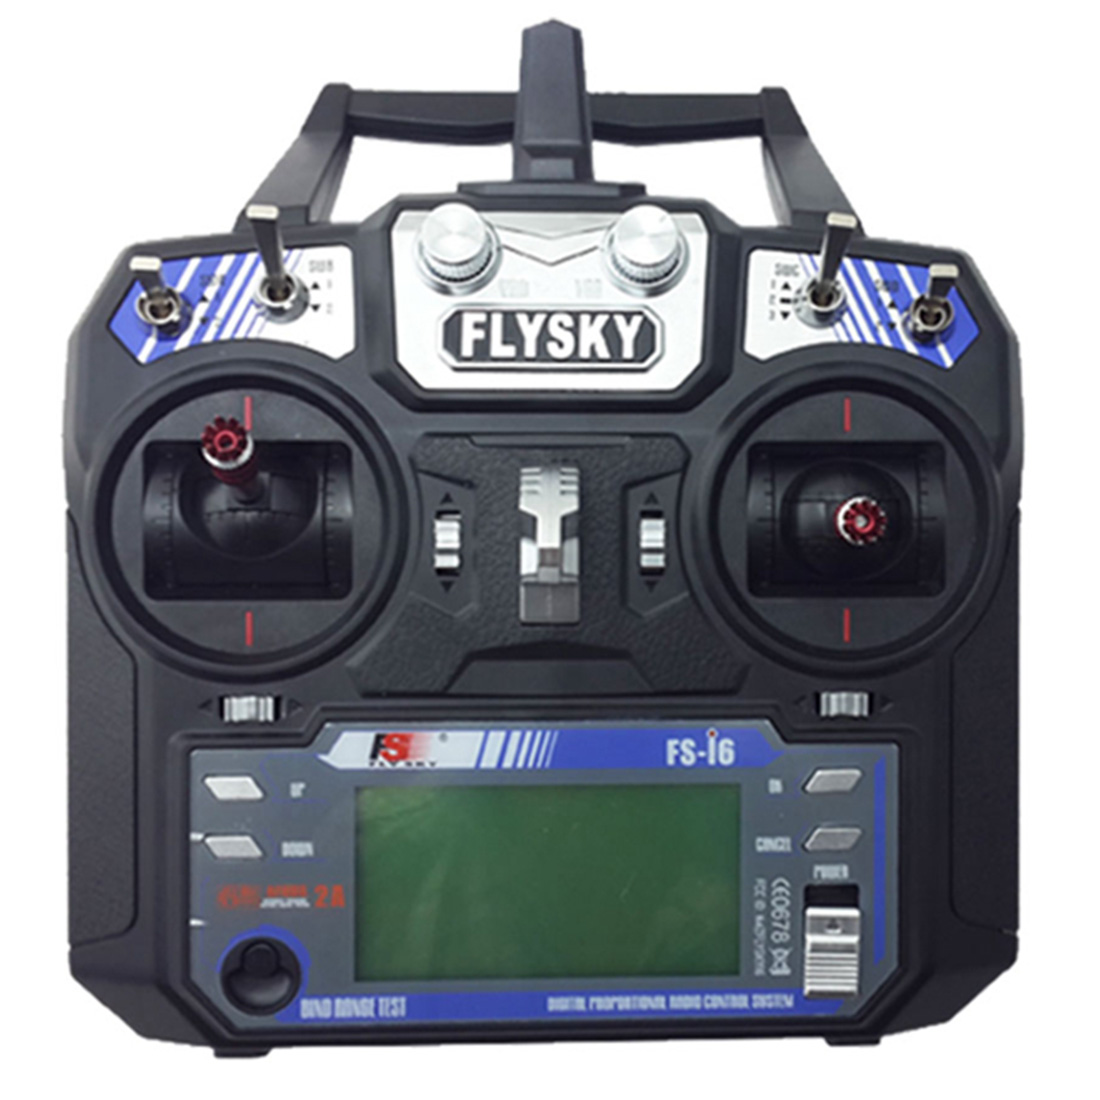 FlySky 2.4G FS-i6 Remote Control with FS-iA6B Receiver RC Helicopter Multirotor FPV Racing Drone for RC Racer Glider/ Aircraft